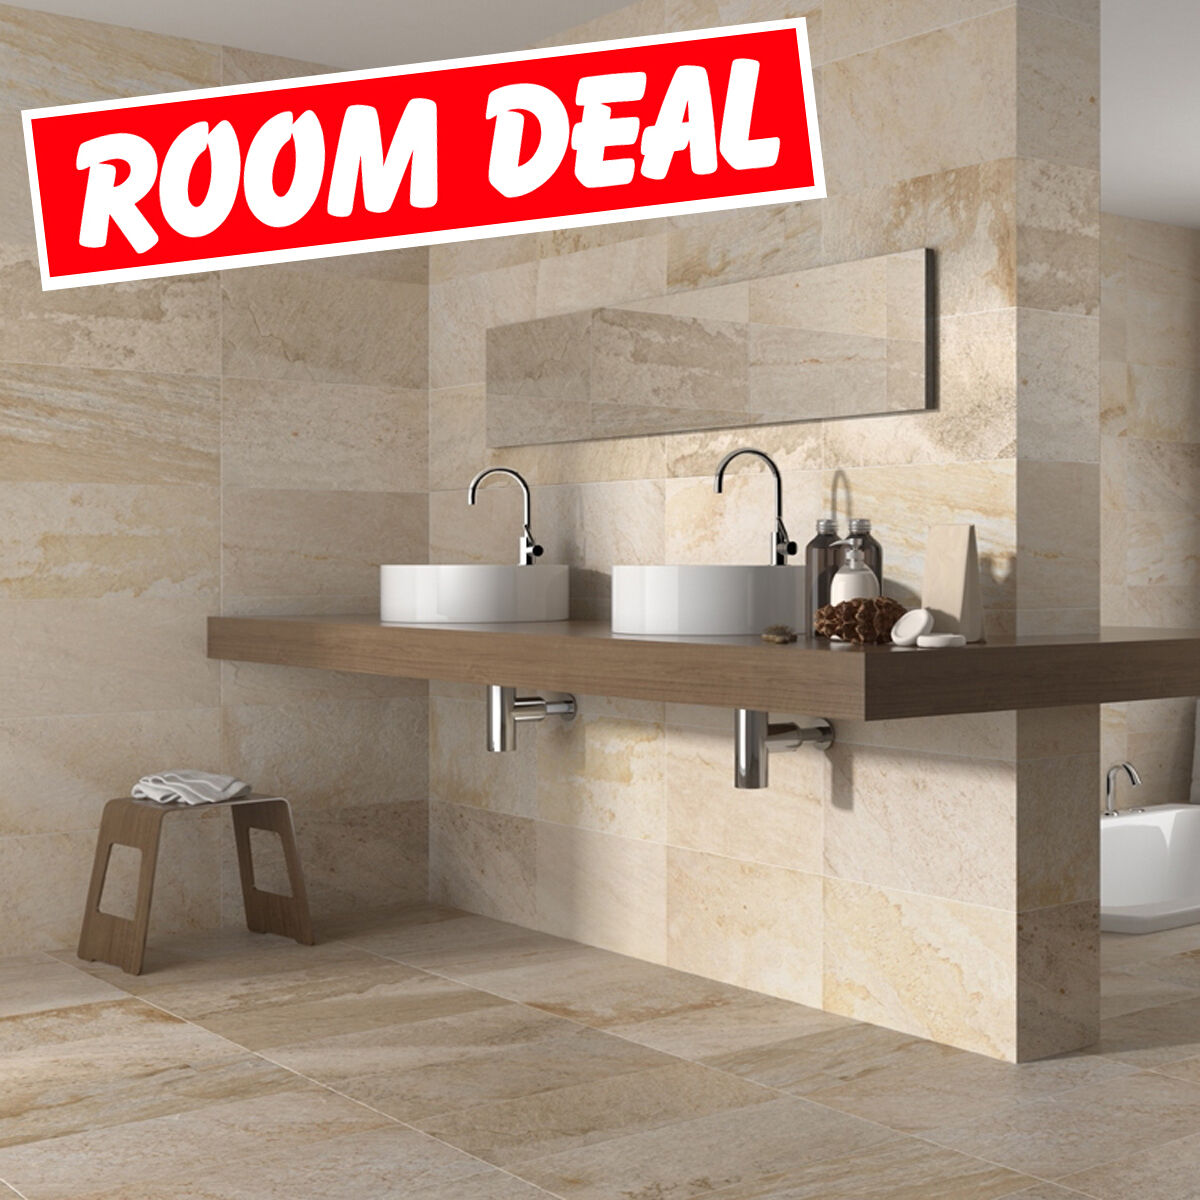 50x27 matt cream stone effect ceramic wallfloor tiles adhesive 50x27 matt cream stone effect ceramic wallfloor tiles adhesivegrout 10 20sqm dailygadgetfo Gallery